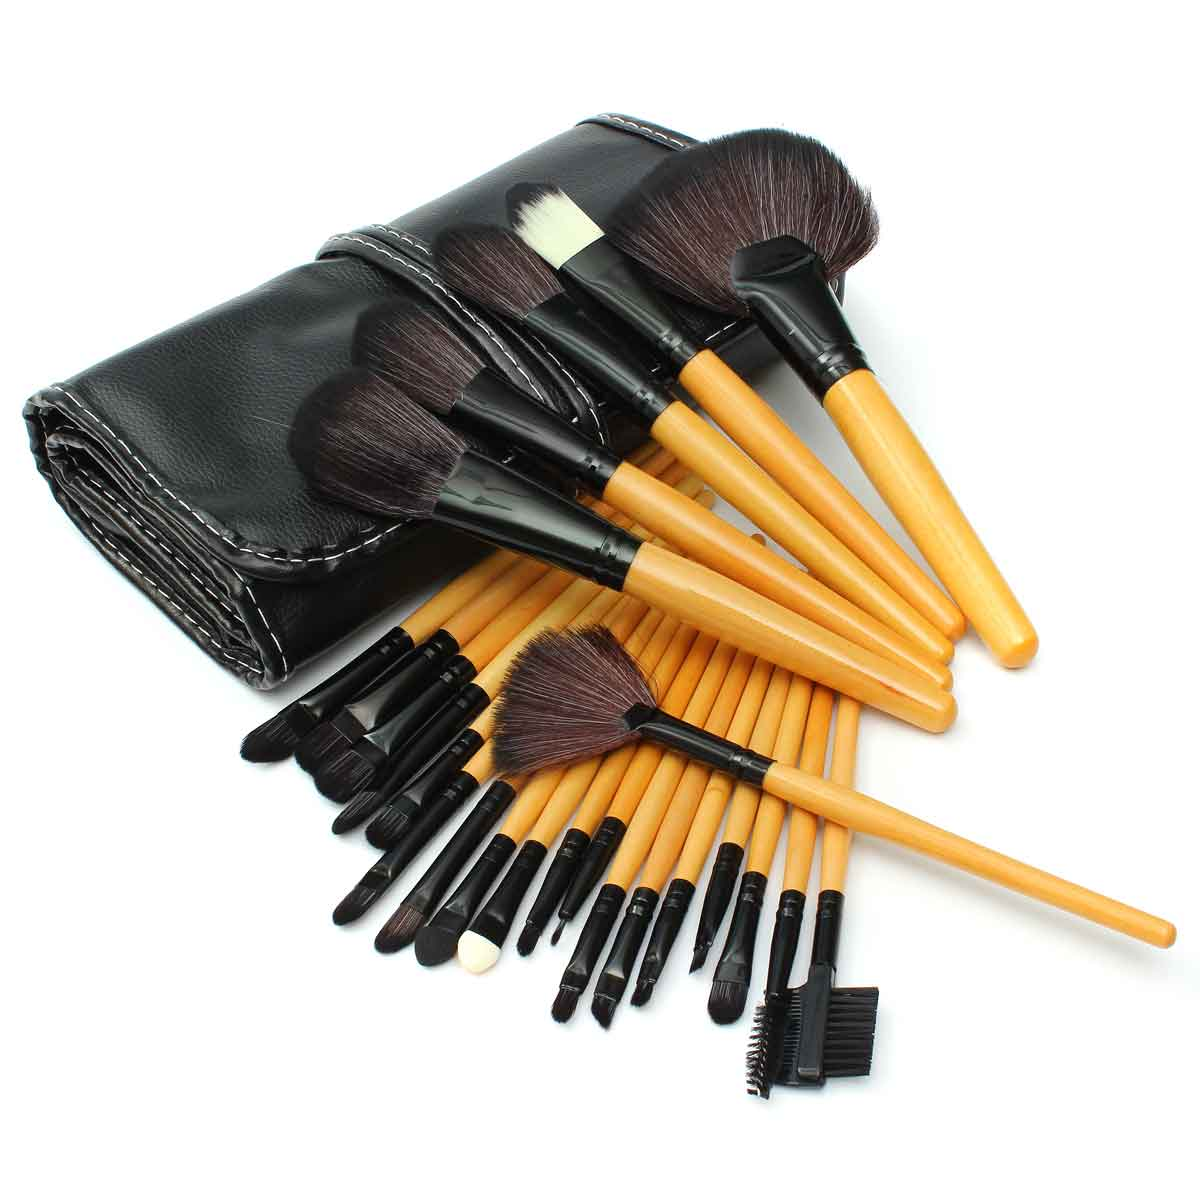 24pcs Makeup Brushes Set Powder Eyeshadow Eyeliner Lip Cosmetic Tool Eyebrow Foundation Liquid